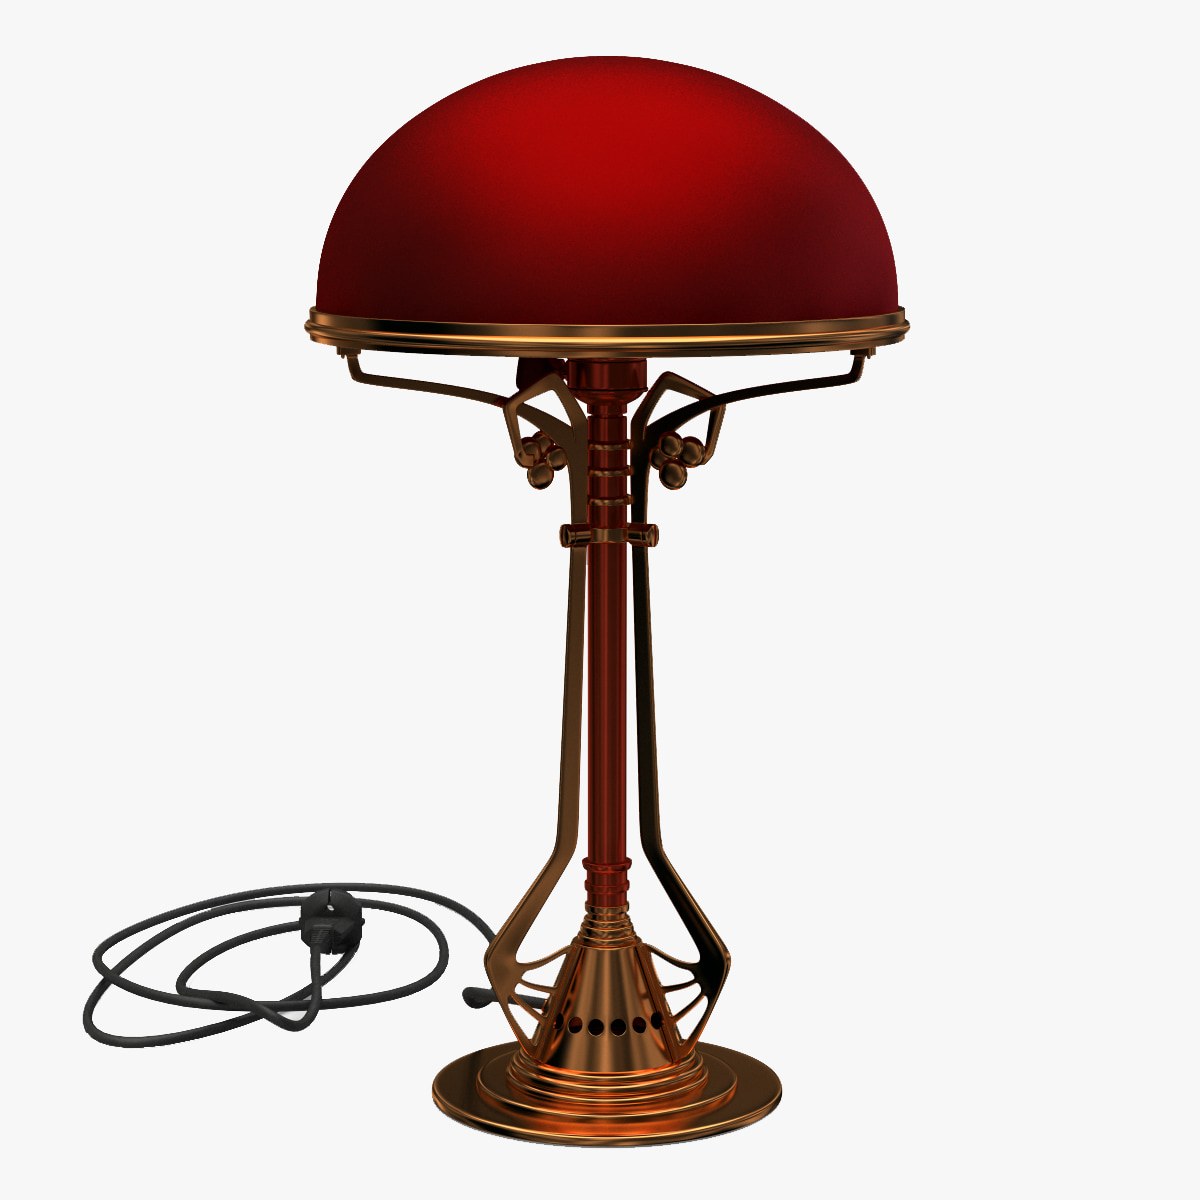 Table_Lamp_V2_000.jpg